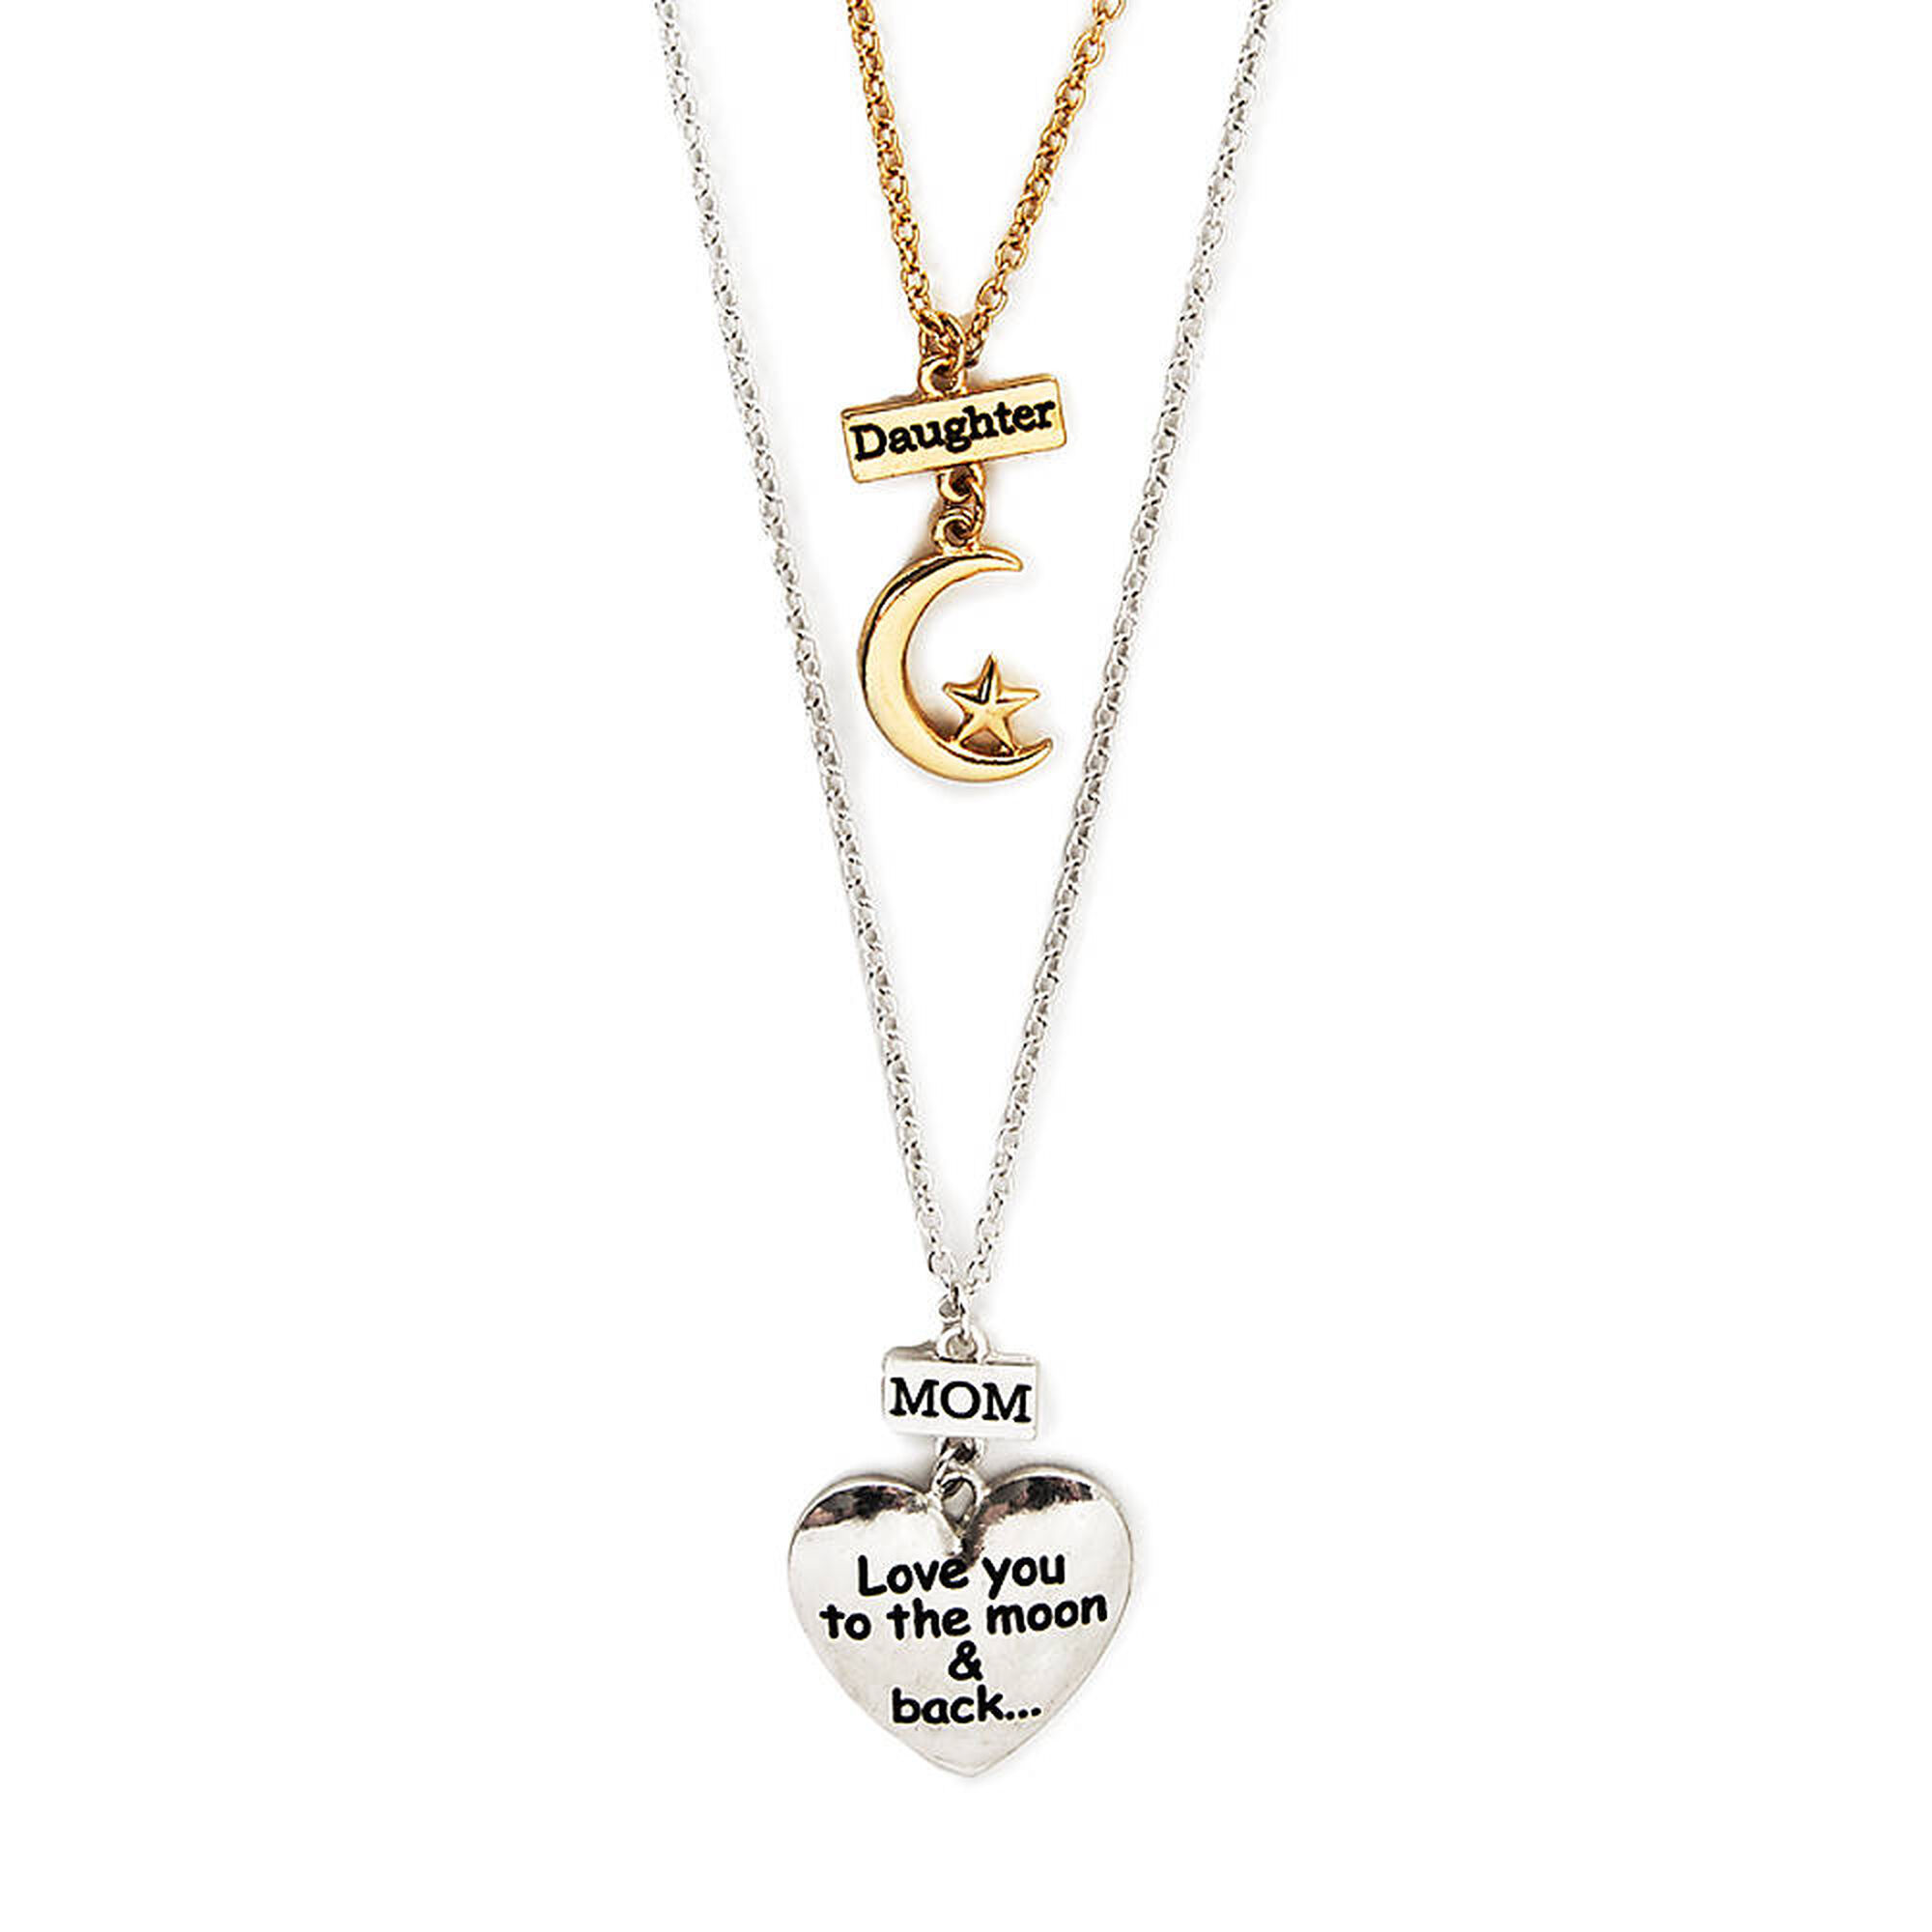 Mother daughter to the moon back pendant necklaces claires us mother daughter to the moon amp back pendant necklaces aloadofball Images